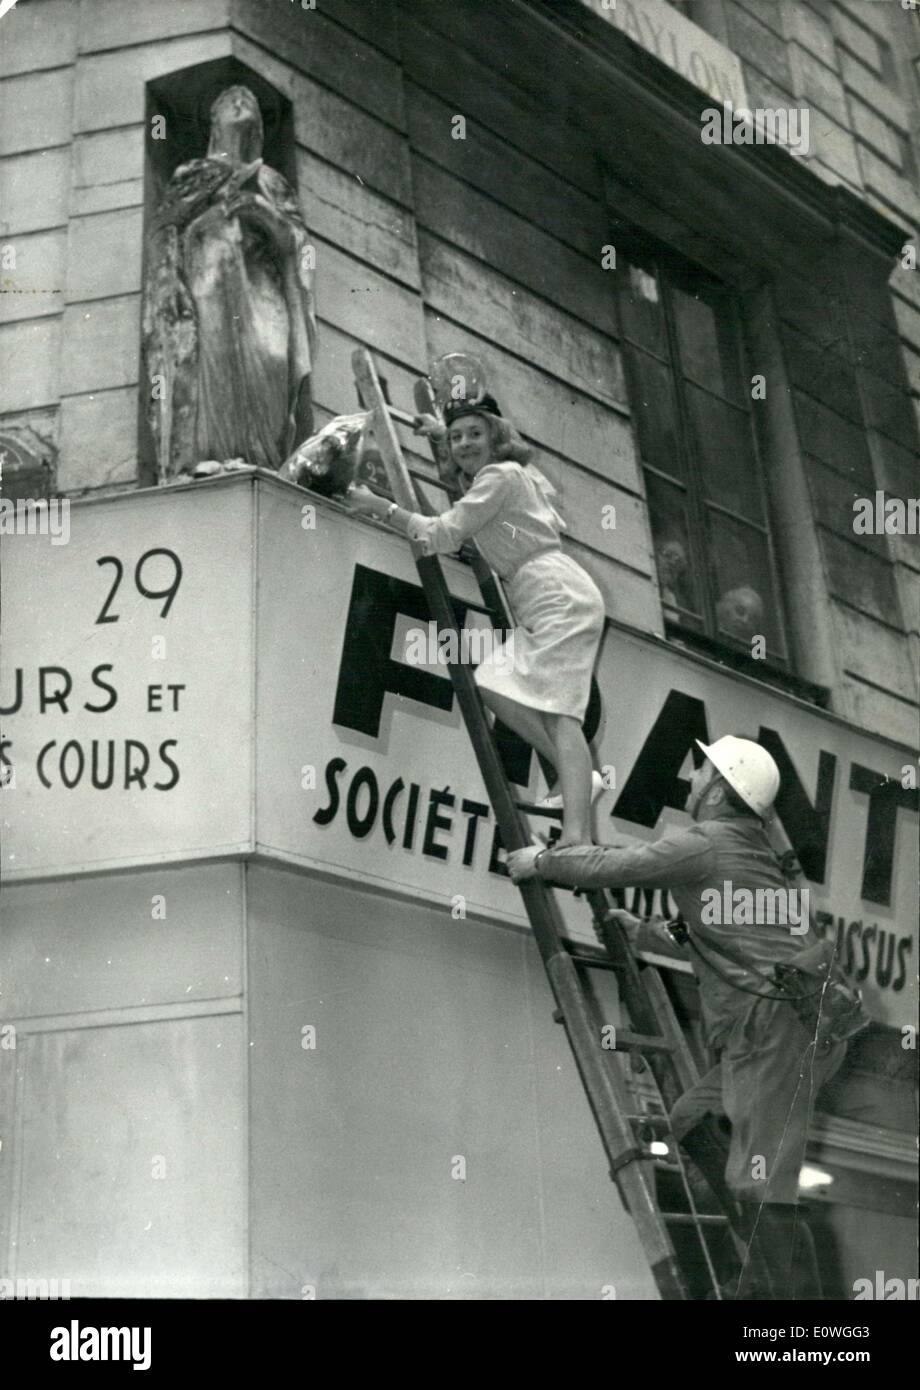 Nov. 23, 1962 - Claude Blondy Adorns St. Catherine Statue with Flowers - Stock Image